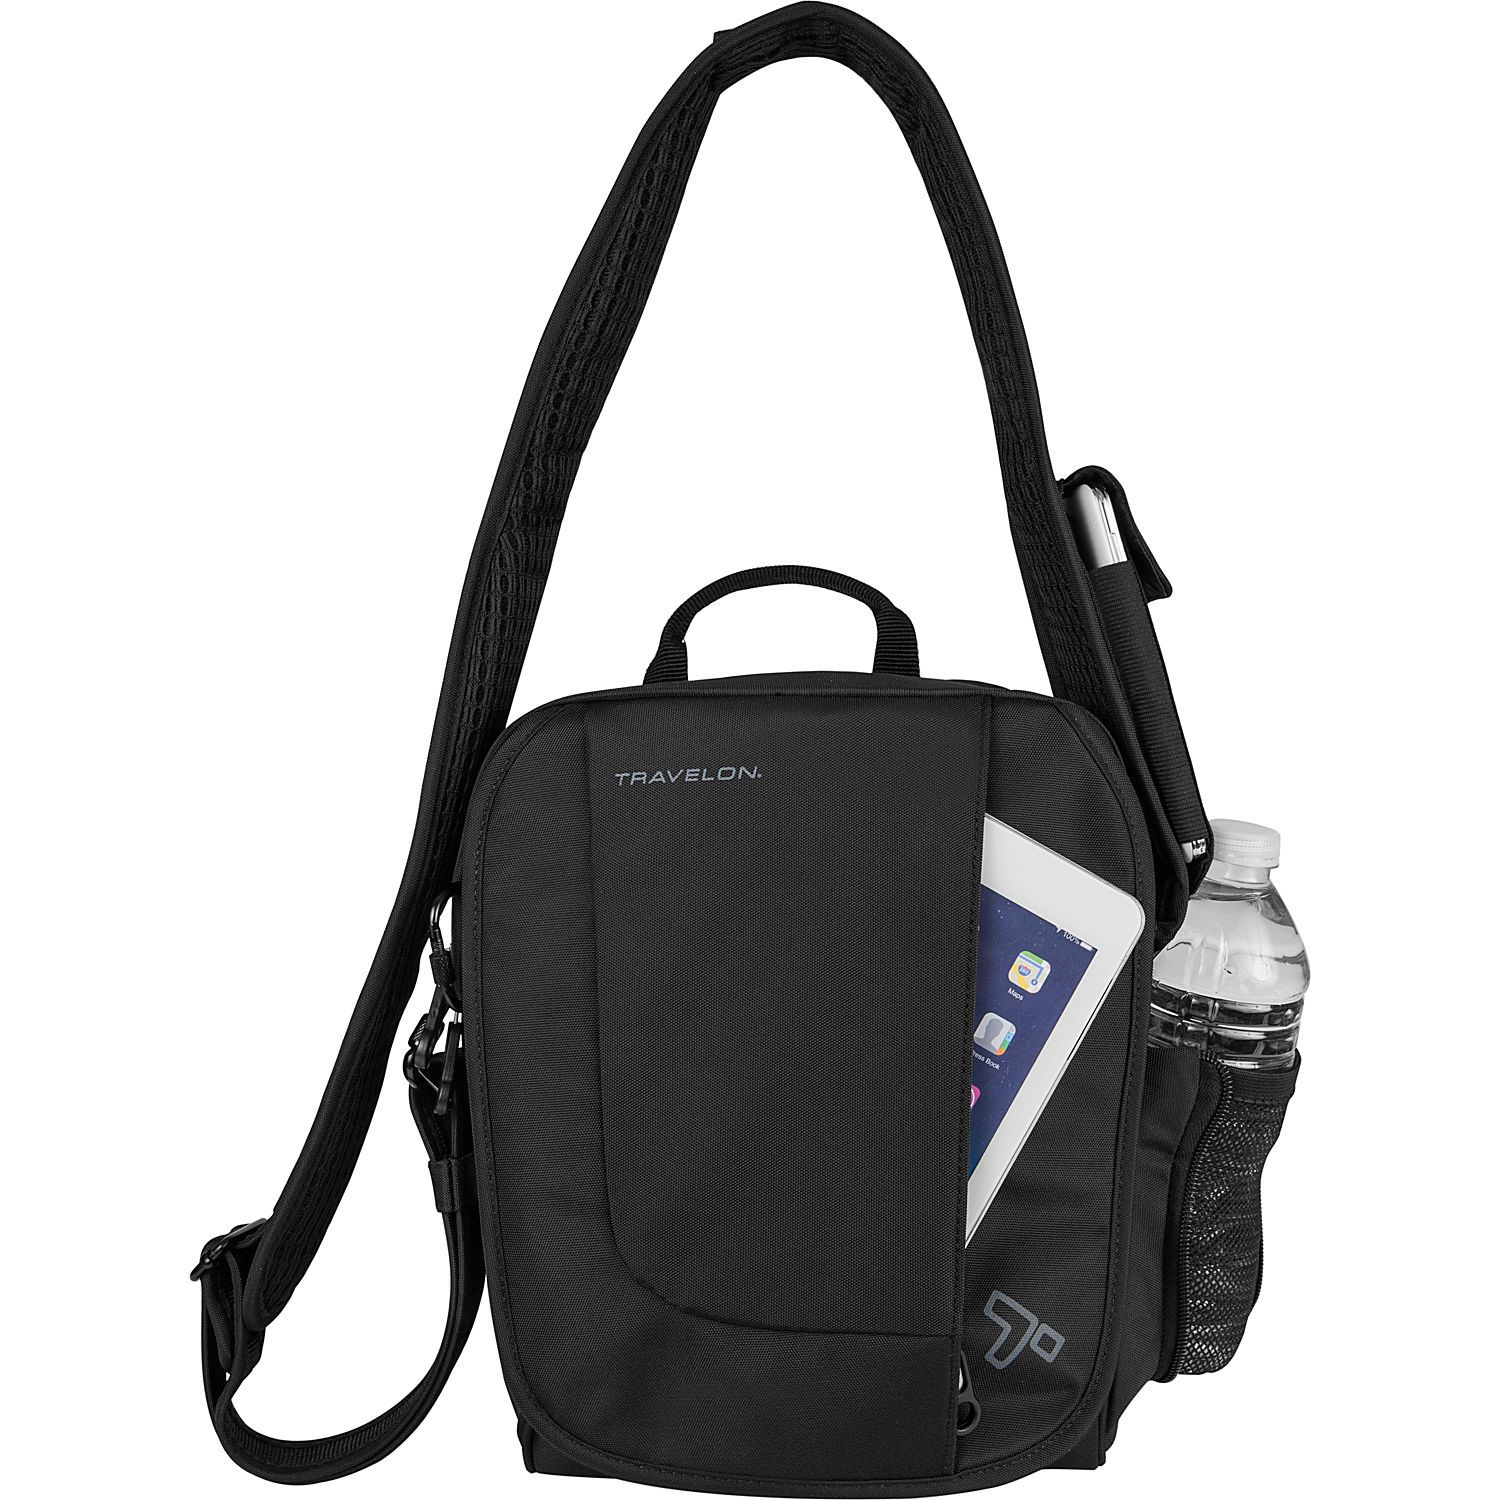 Buy the Travelon Anti-Theft Urban Tour Bag at eBags - Protect ...